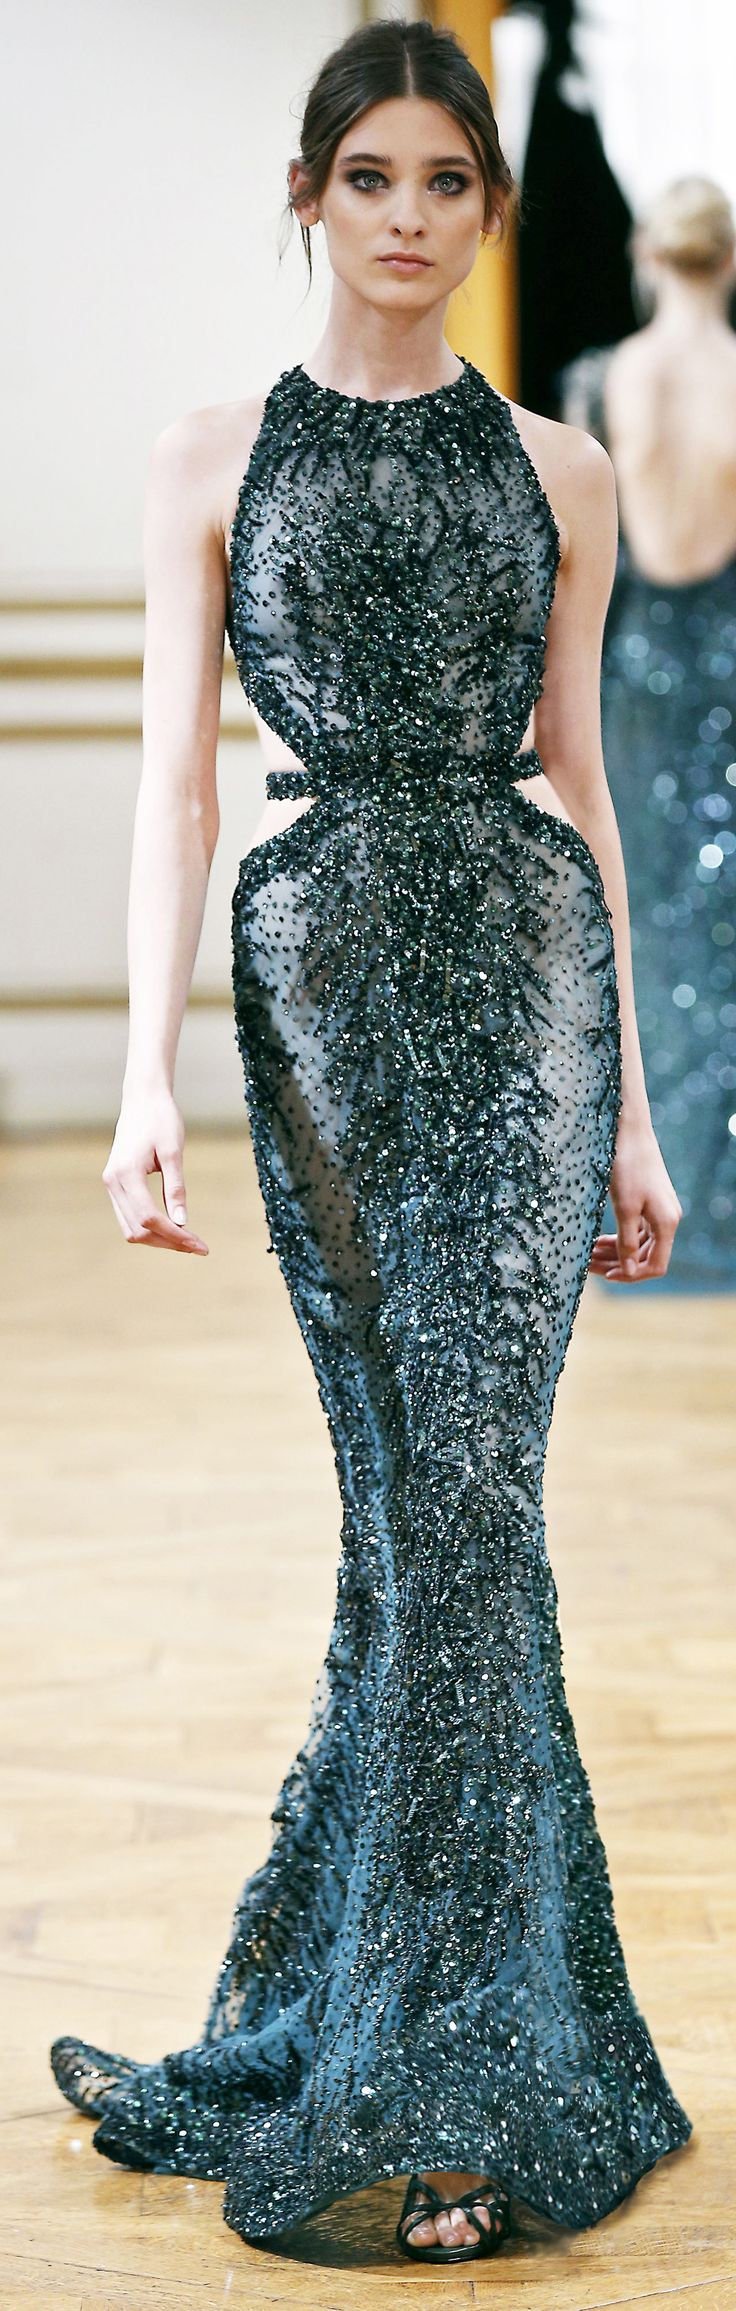 I would like to see _______ wear this Zuhair Murad dress to the Oscars.